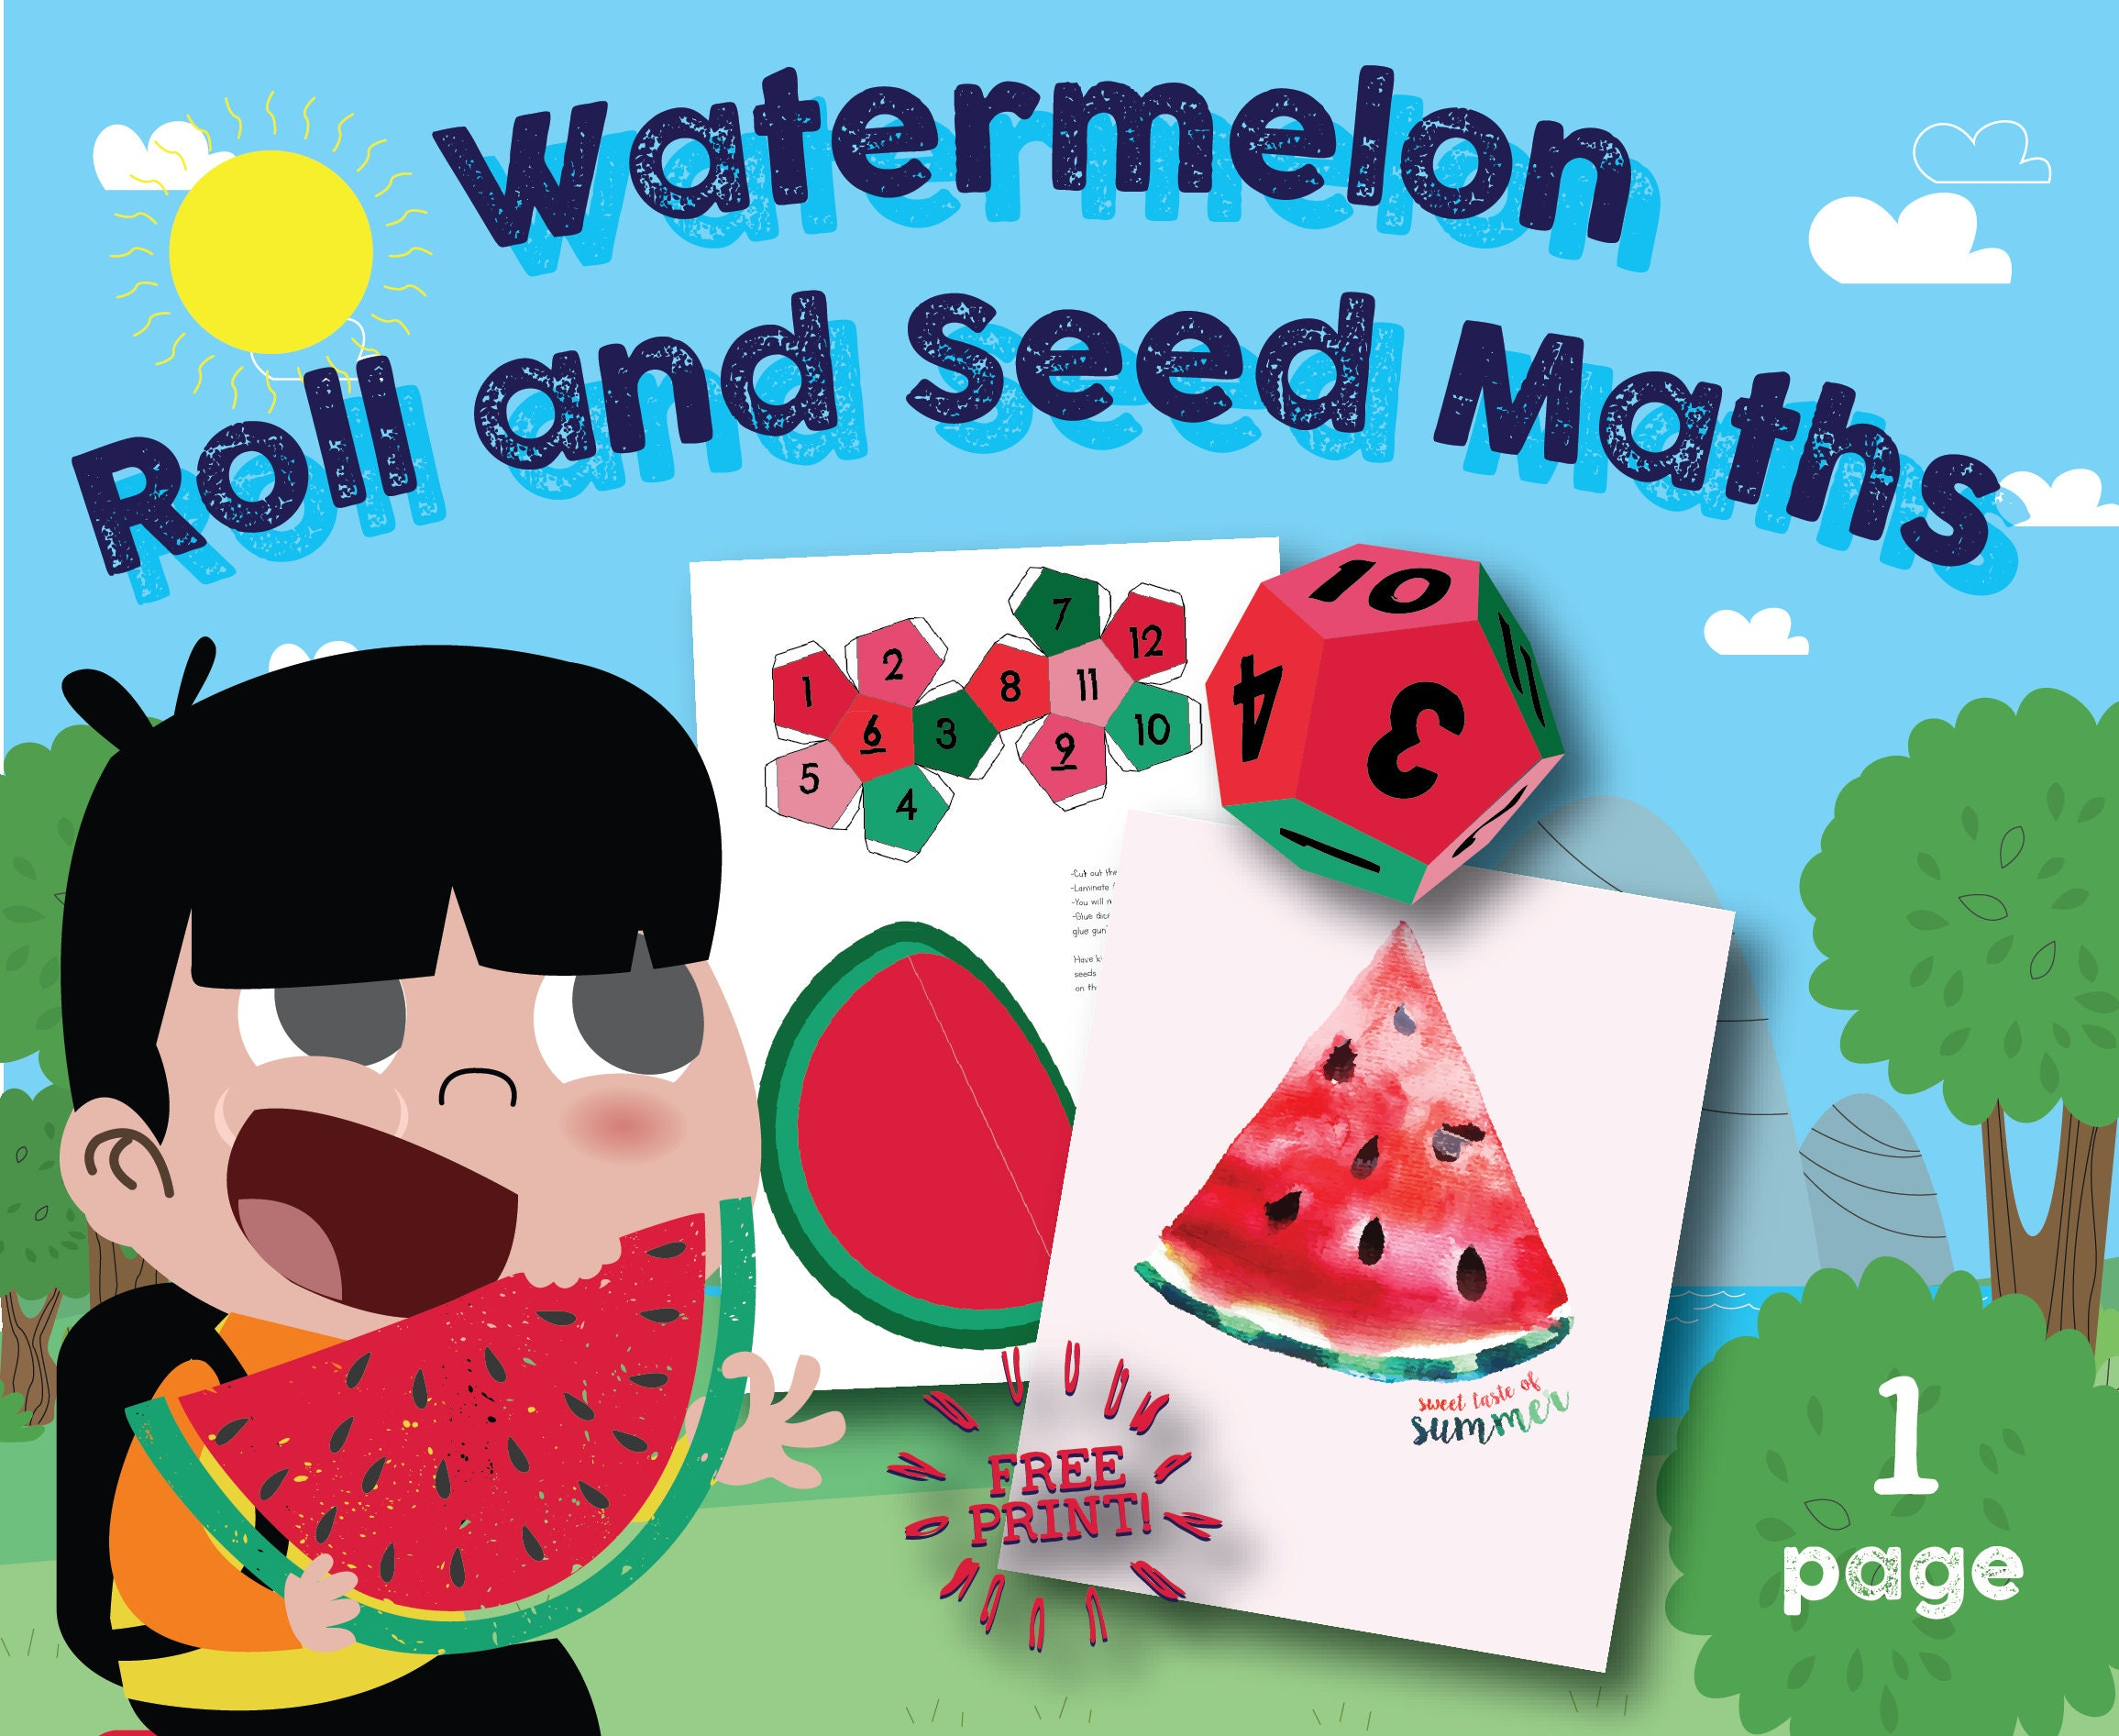 Watermelon Math Busy Bag Game Dice Roll and Seed Summer | Etsy